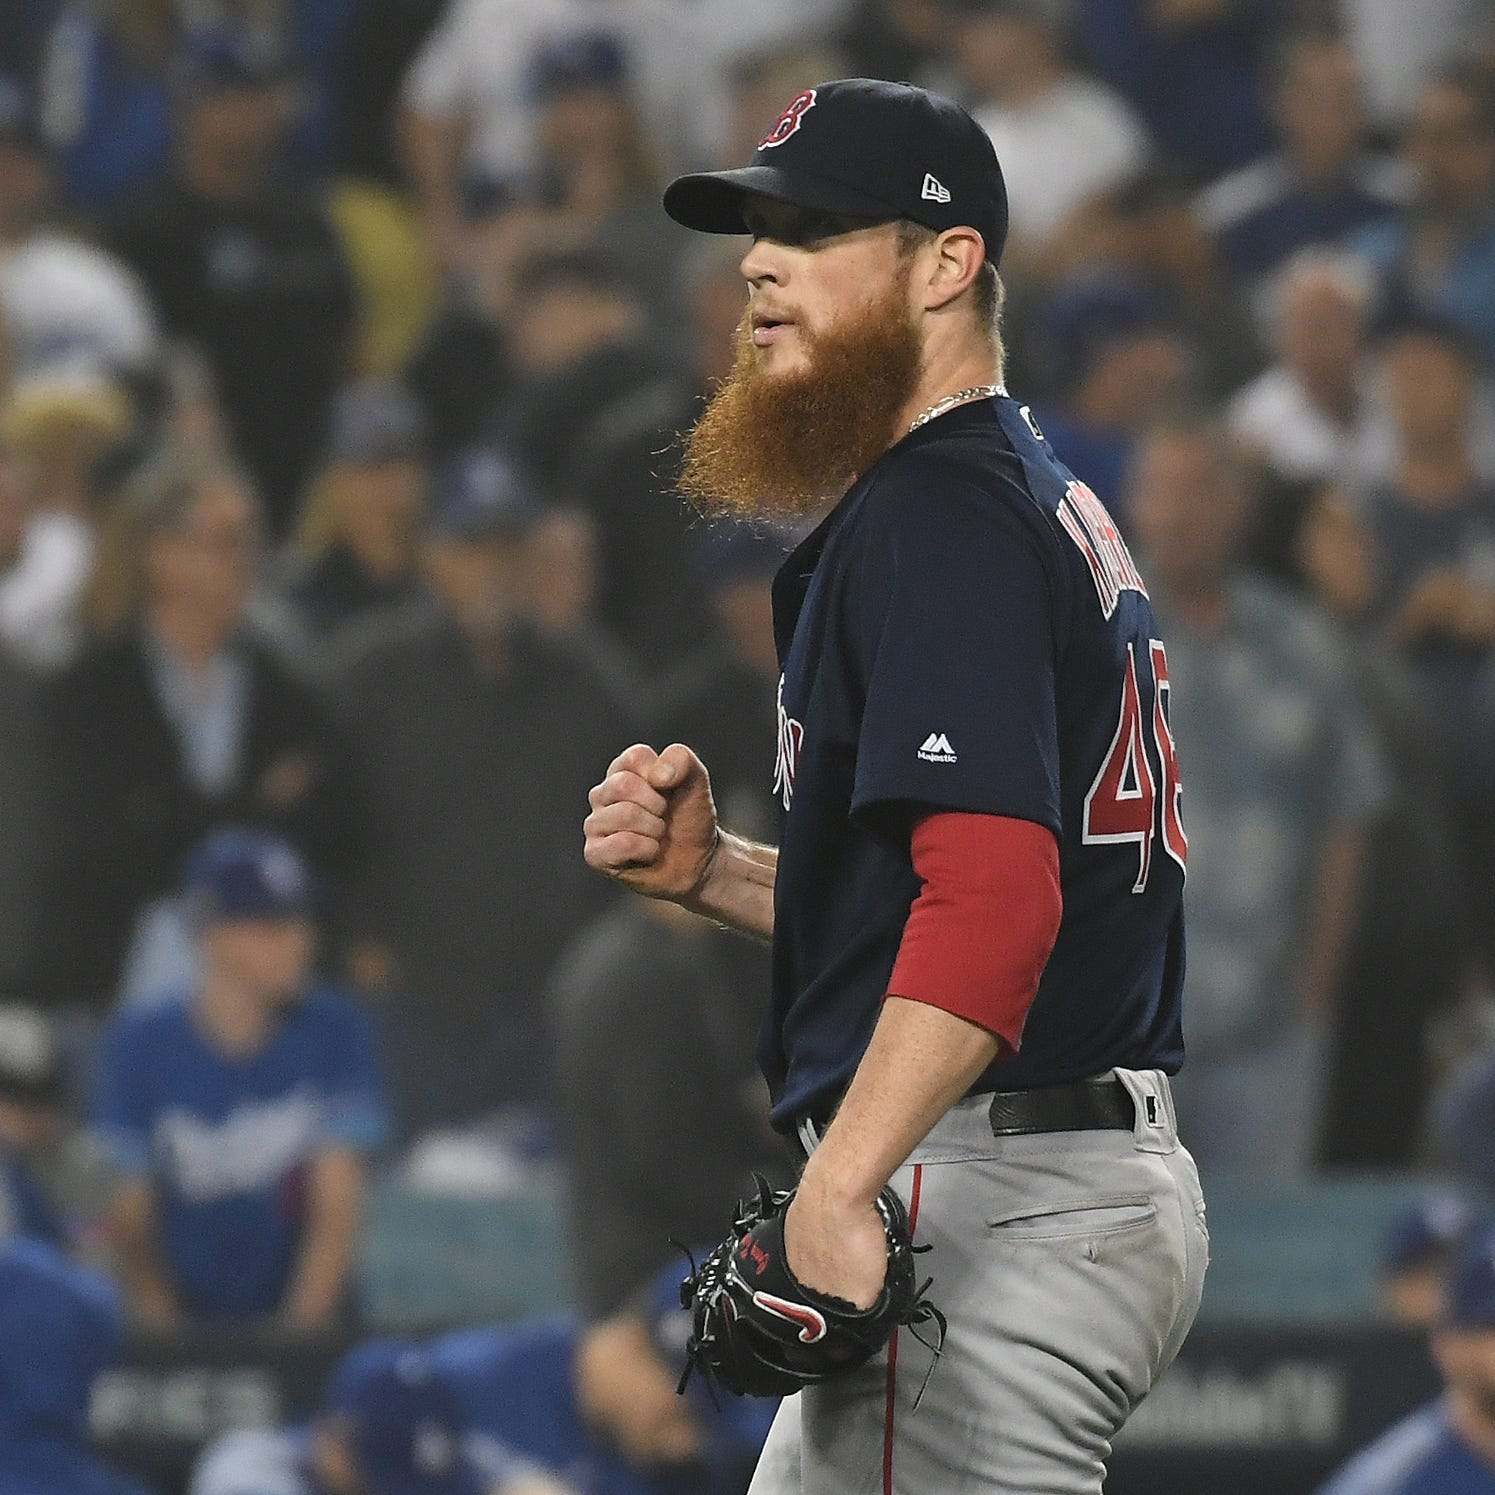 Yes, the Brewers have talked with free agent Craig Kimbrel, but there's no indication of a possible agreement